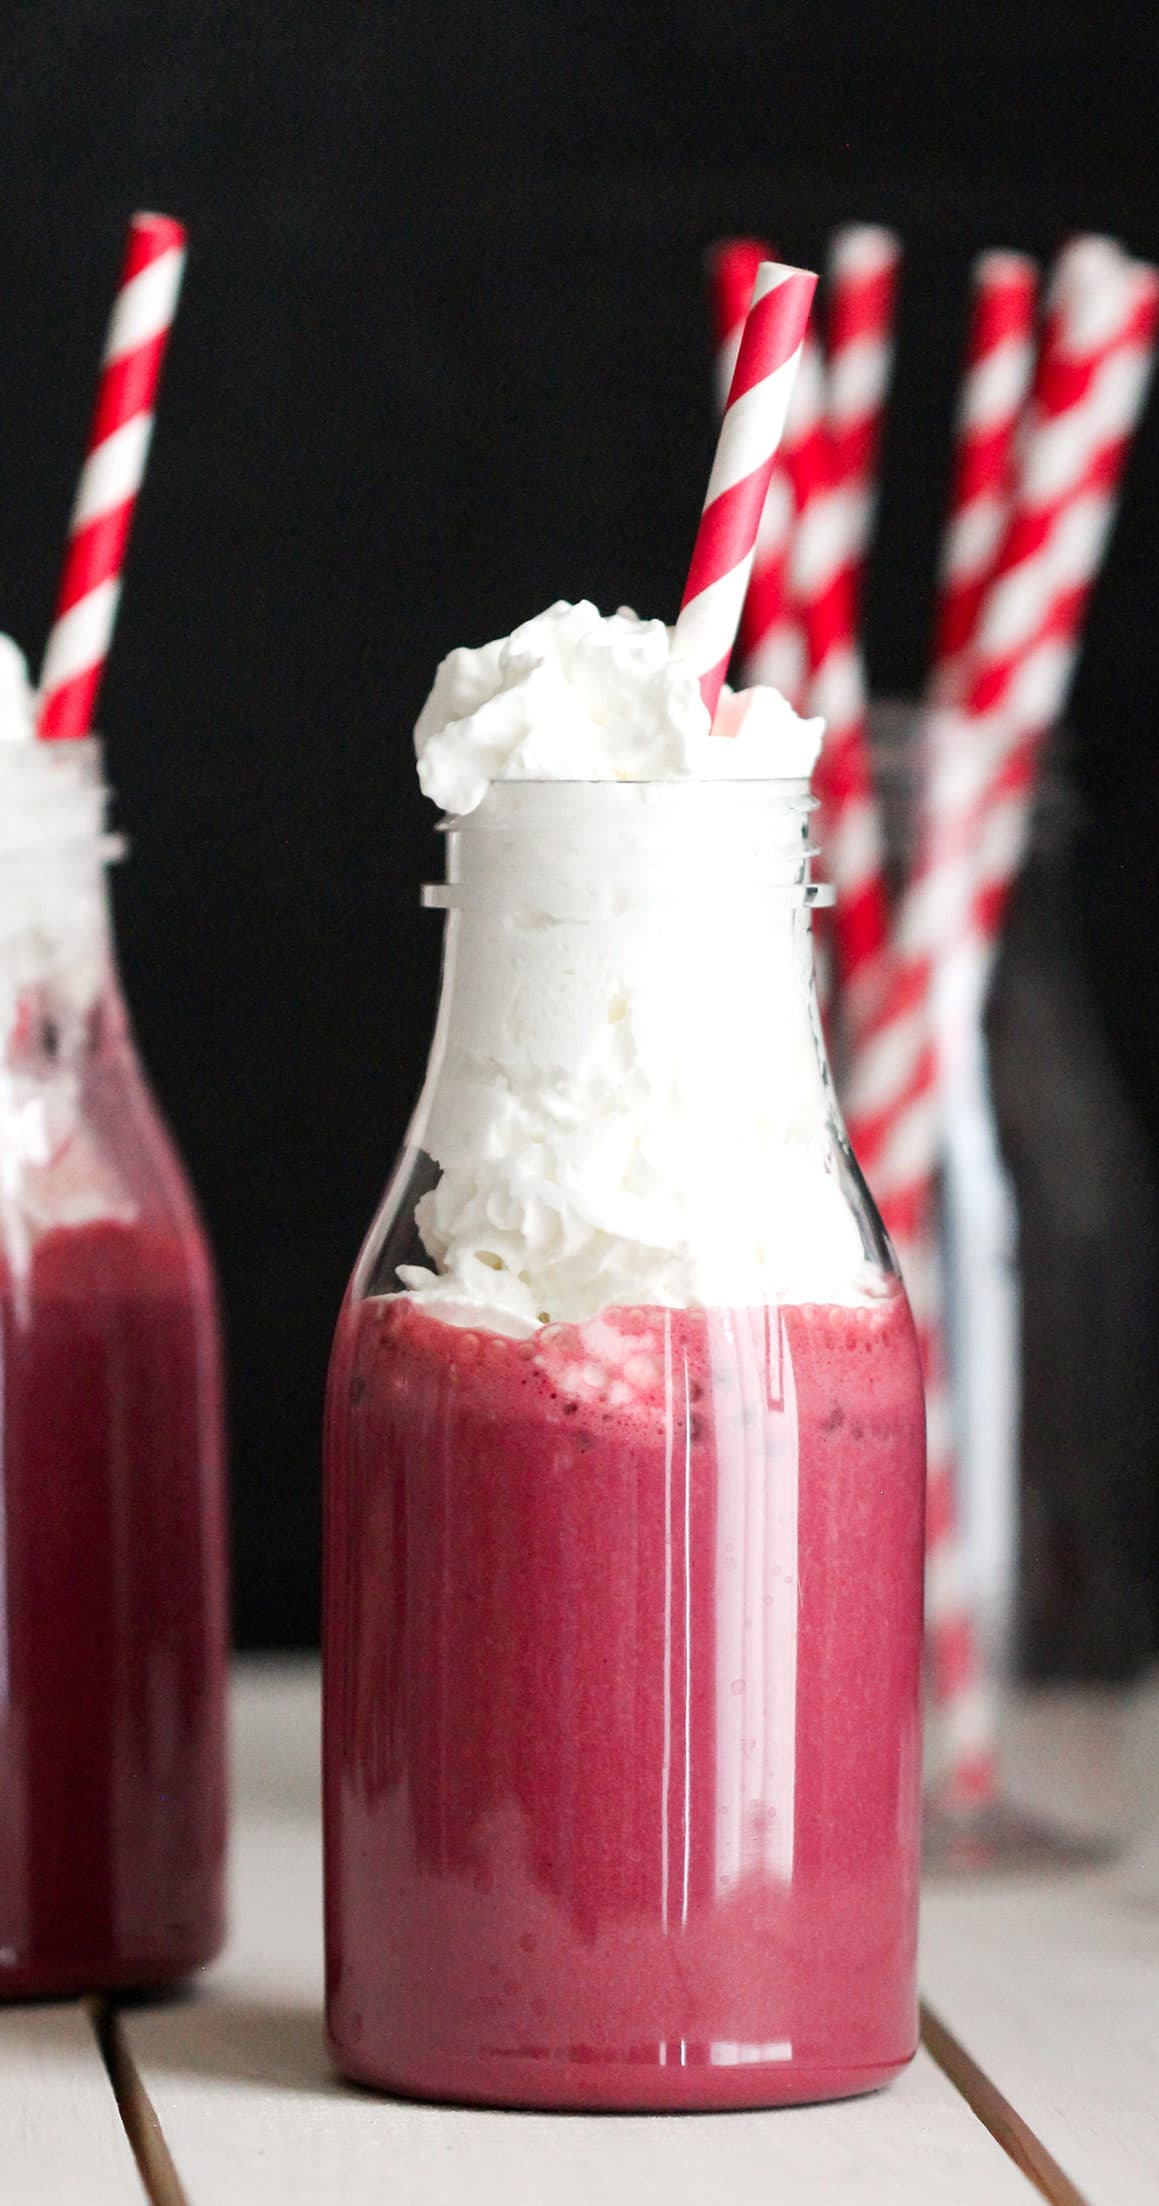 Healthy Red Velvet Smoothie (sugar free, low carb, low fat, high protein, high fiber, gluten free, vegan optional) - Healthy Dessert Recipes at Desserts with Benefits